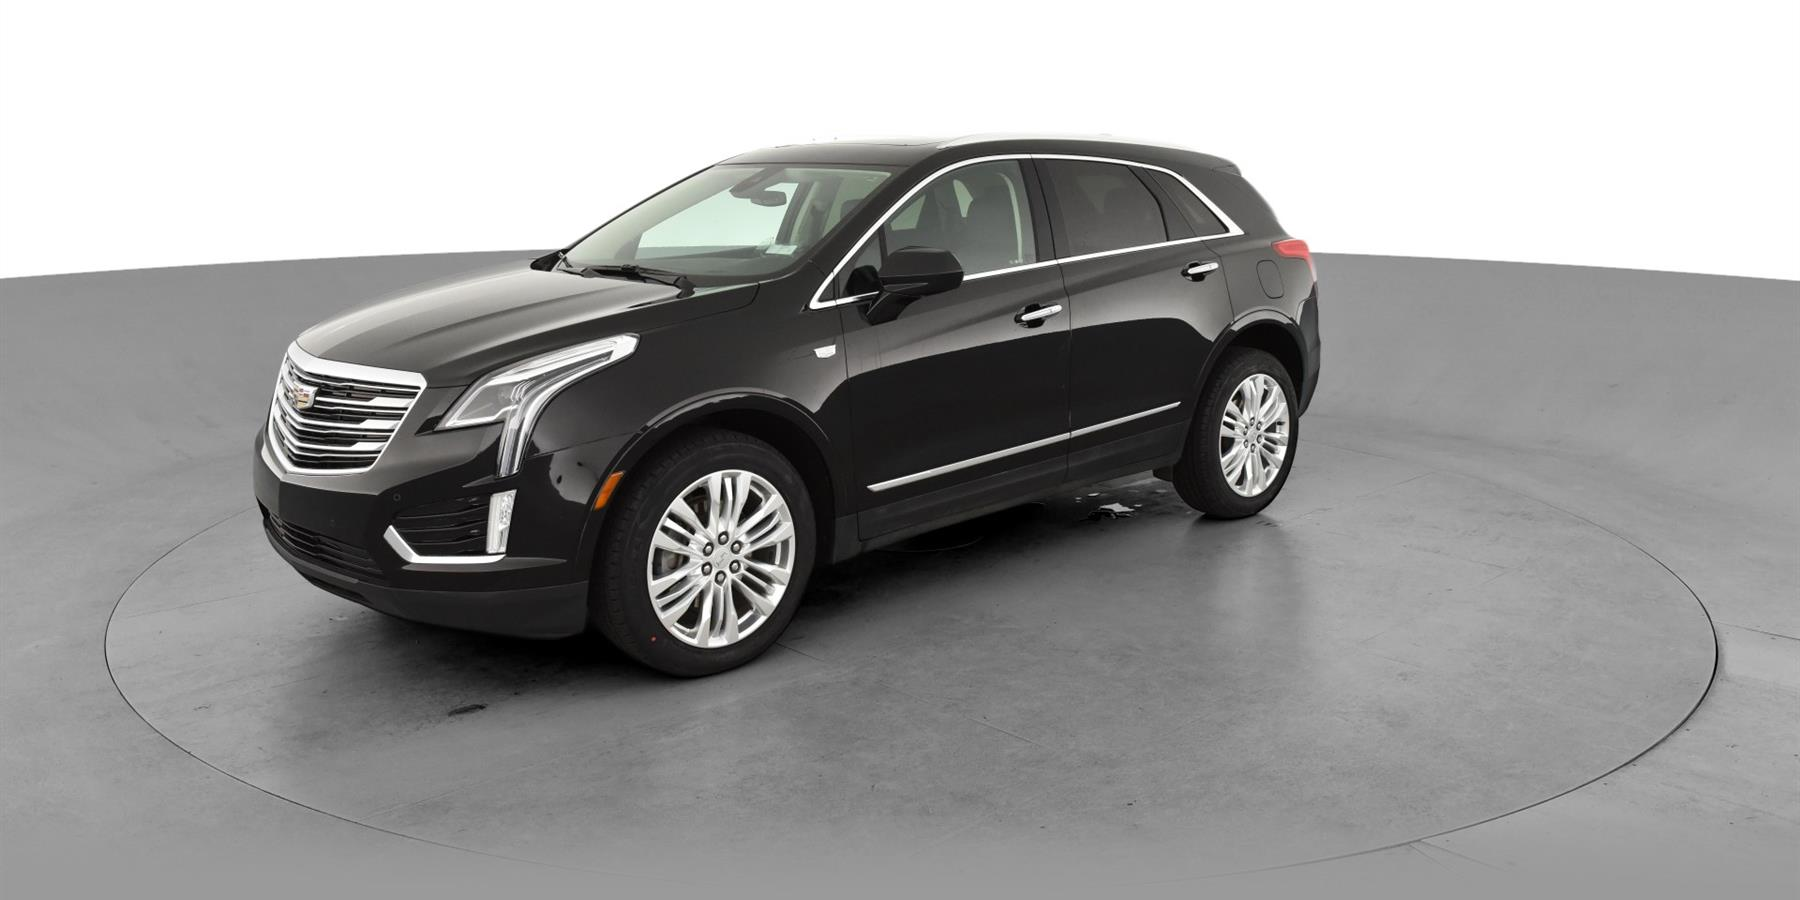 2017 cadillac xt5 premium luxury sport utility 4d for sale carvana